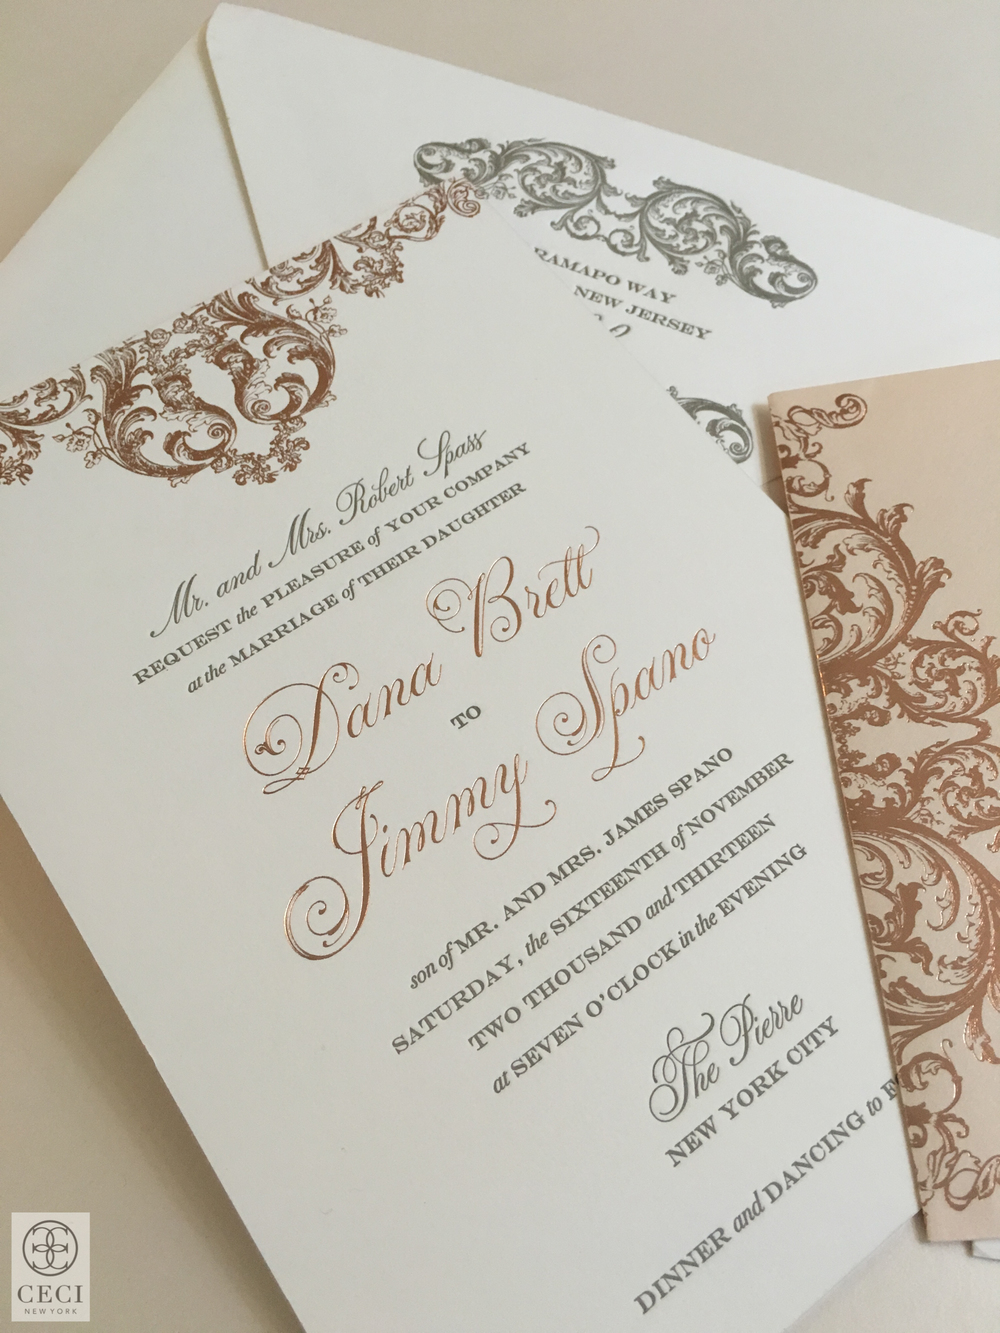 Ceci_New_York_Pierre_Invitations_Wedding_New_York_Elegance_Rose_Gold_Baroque_Classic_Foil_Stamping_Custom_Couture_Personalized-2.jpg